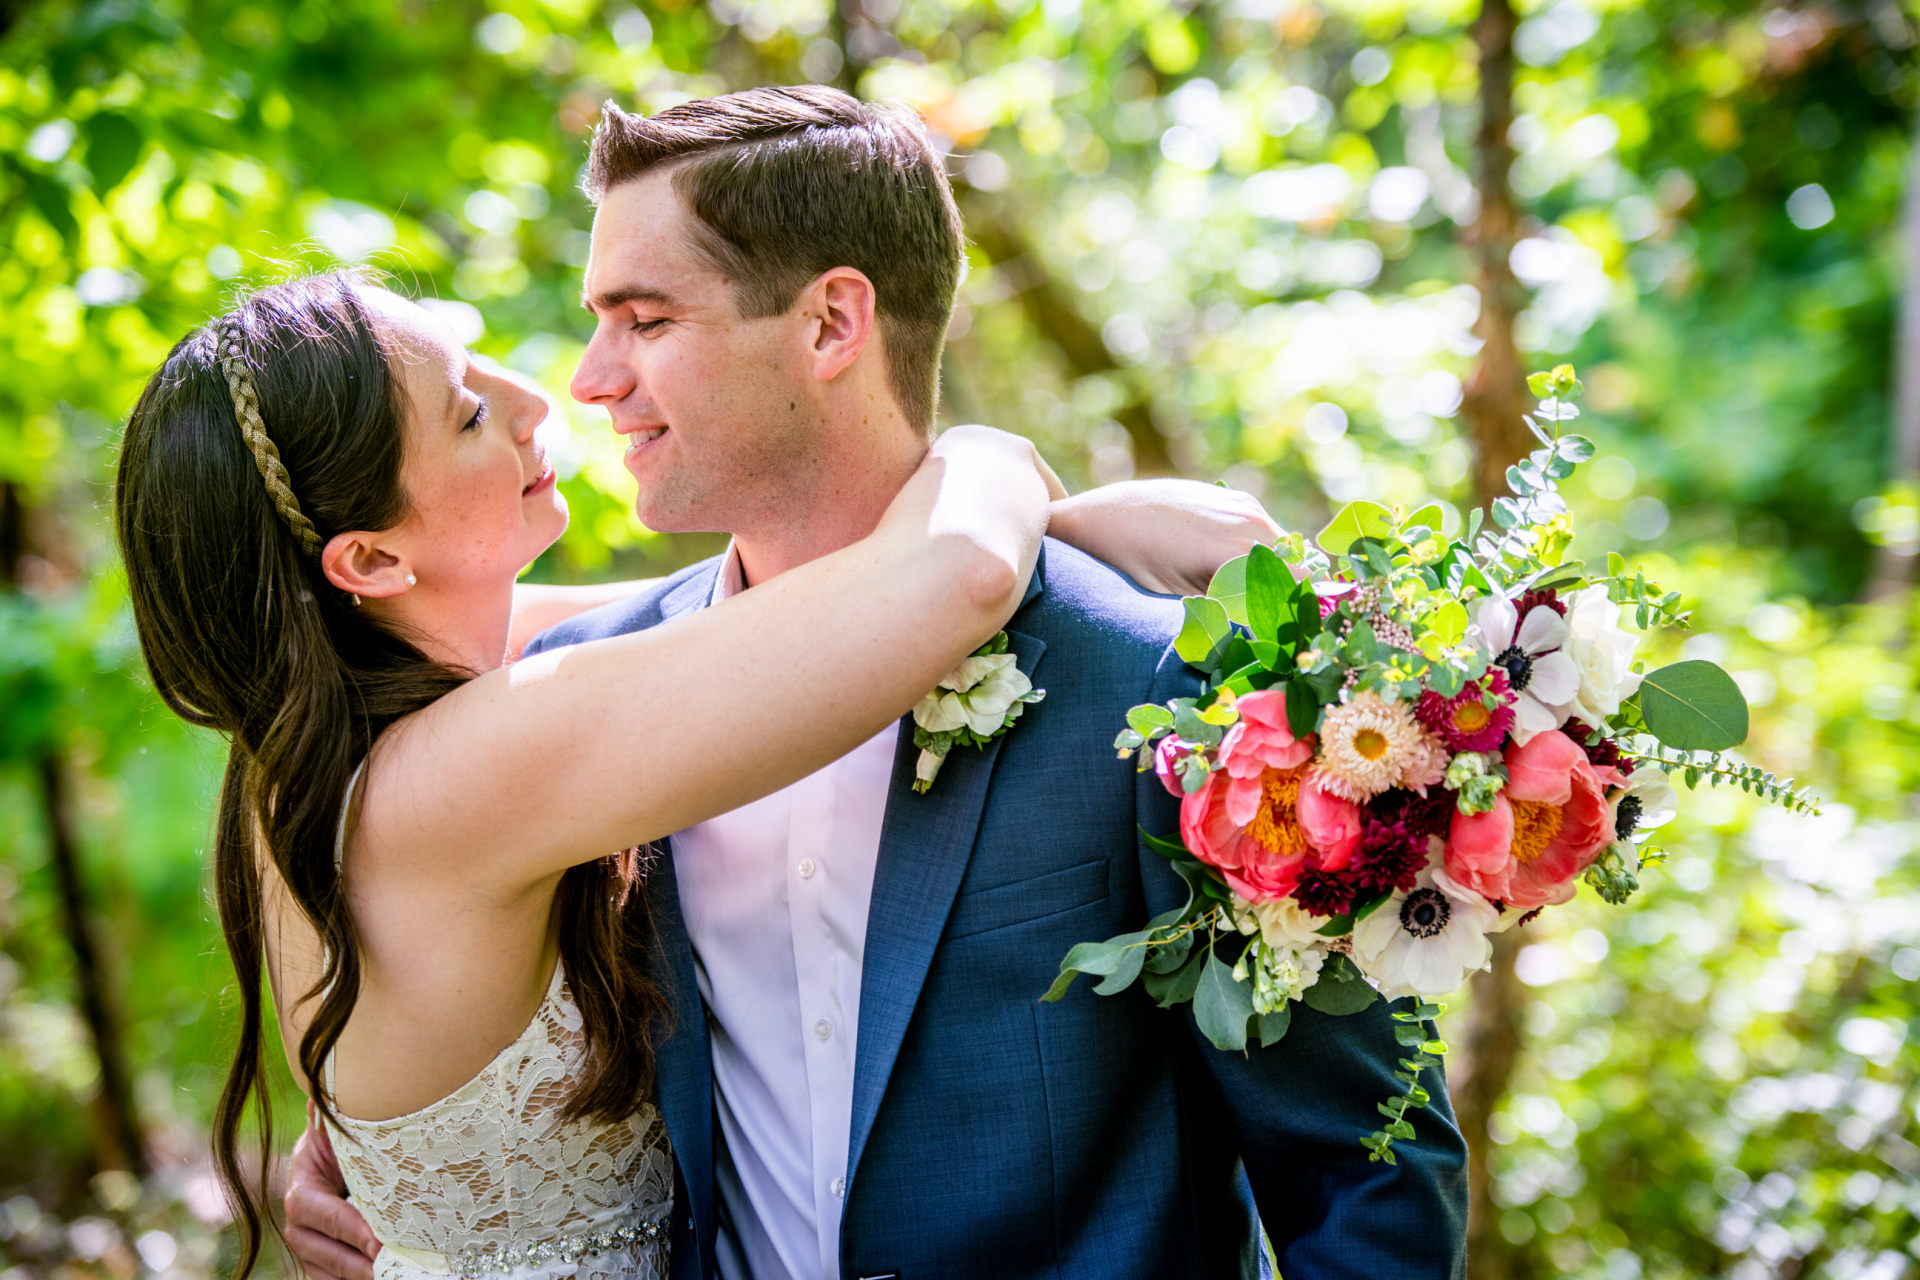 VA Home Elopement Pictures | The couple takes a moment to themselves as they hug each other